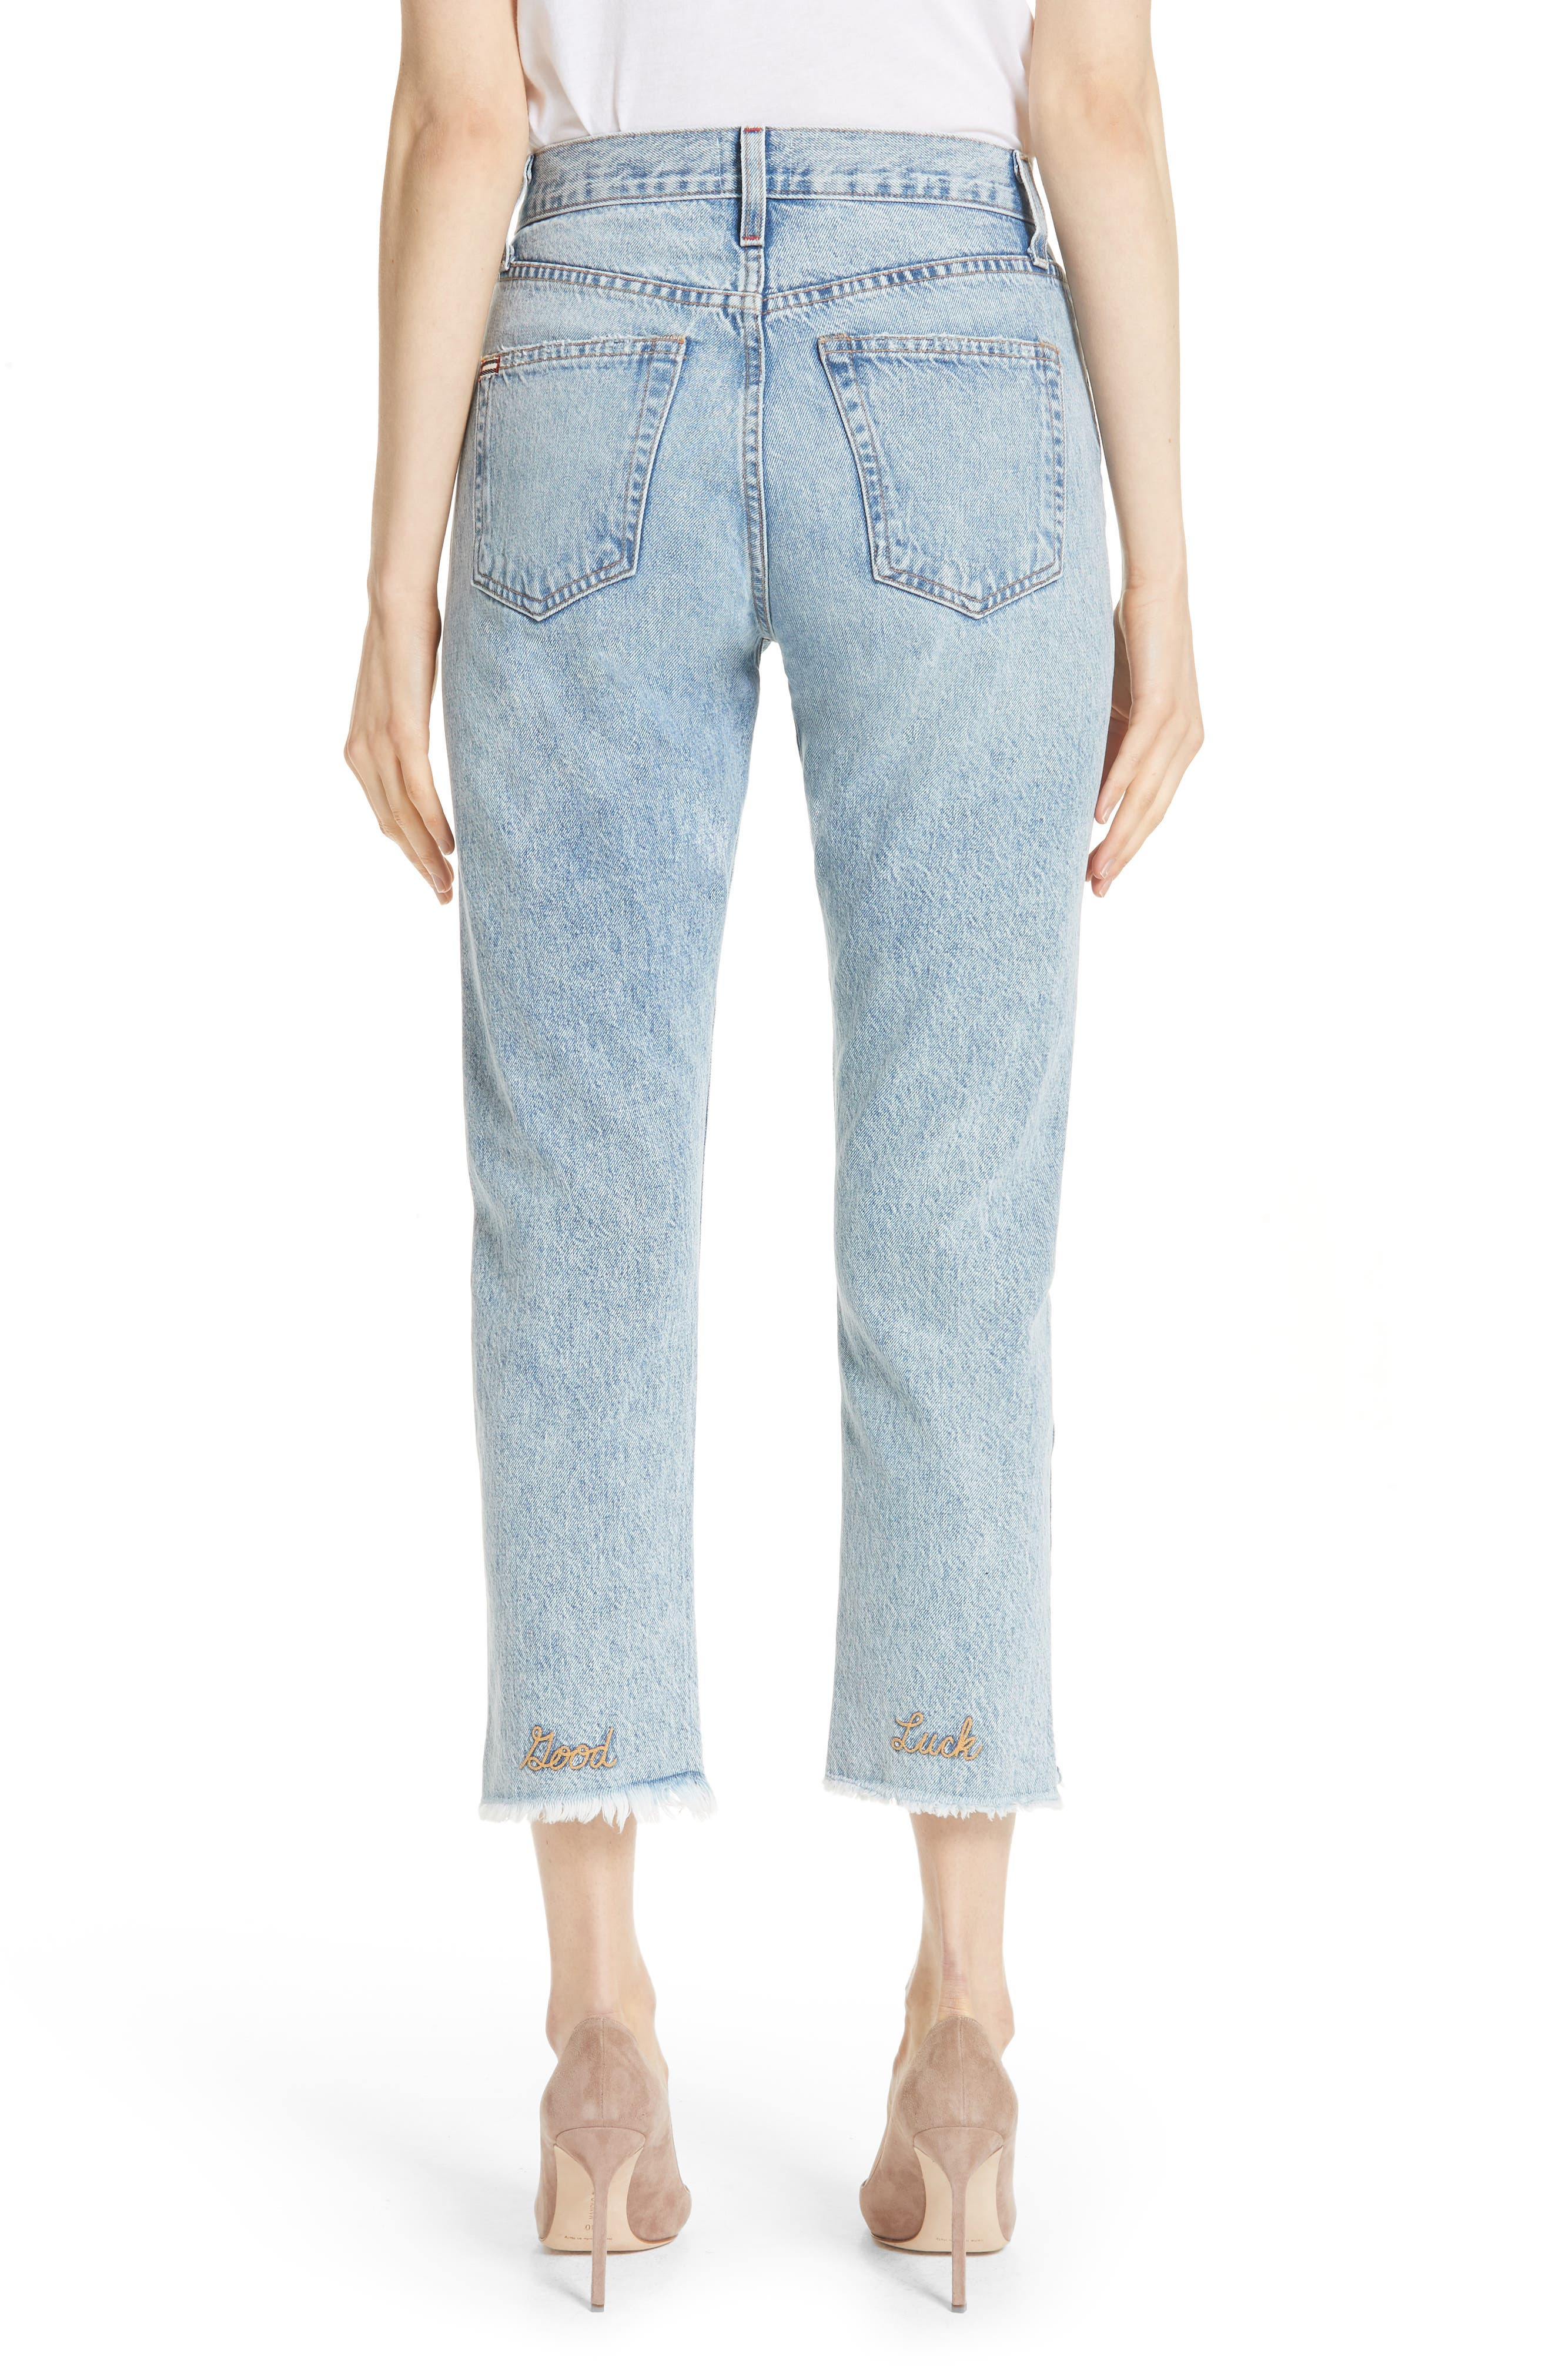 ALICE + OLIVIA JEANS,                             Amazing Good Luck Slim Girlfriend Jeans,                             Alternate thumbnail 2, color,                             490